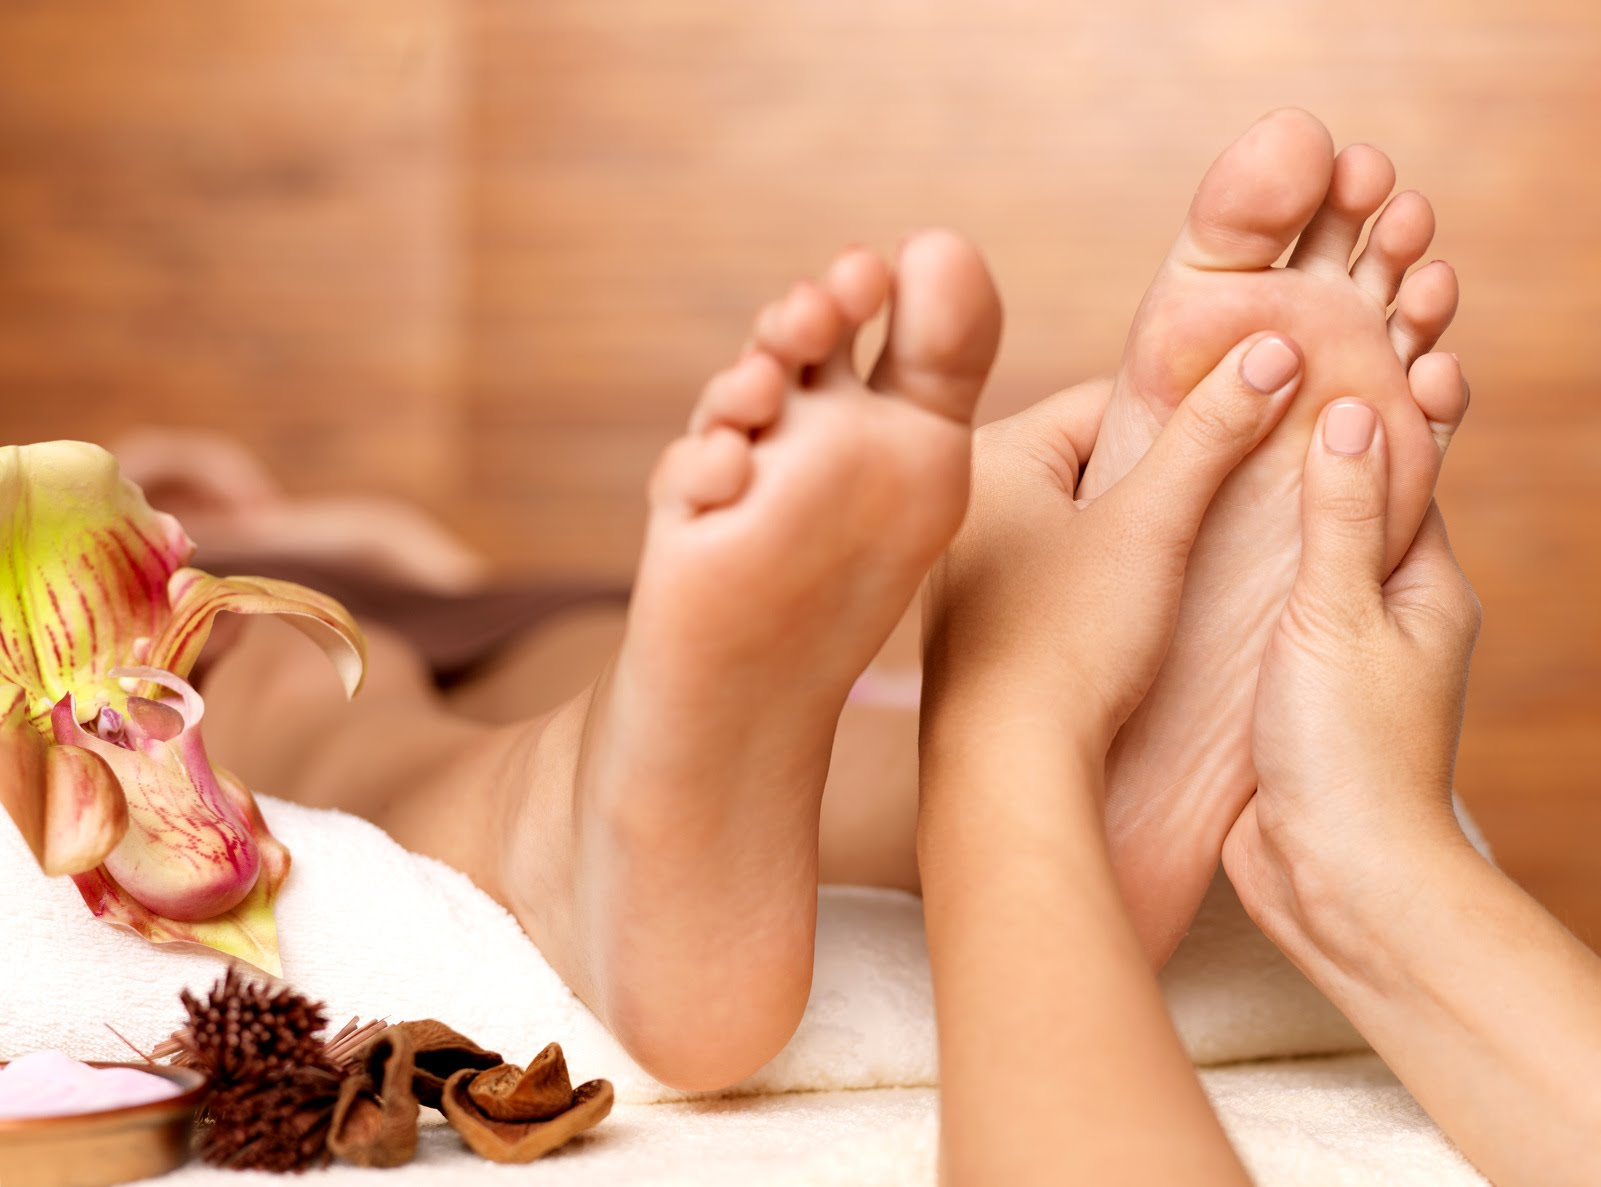 Reflex Therapy Foot Massage £35 30 mins - A relaxing foot massage based on the ancient art of reflexology. Deeply relaxing and stimulating the body's natural ability to heal. Highly recommended!